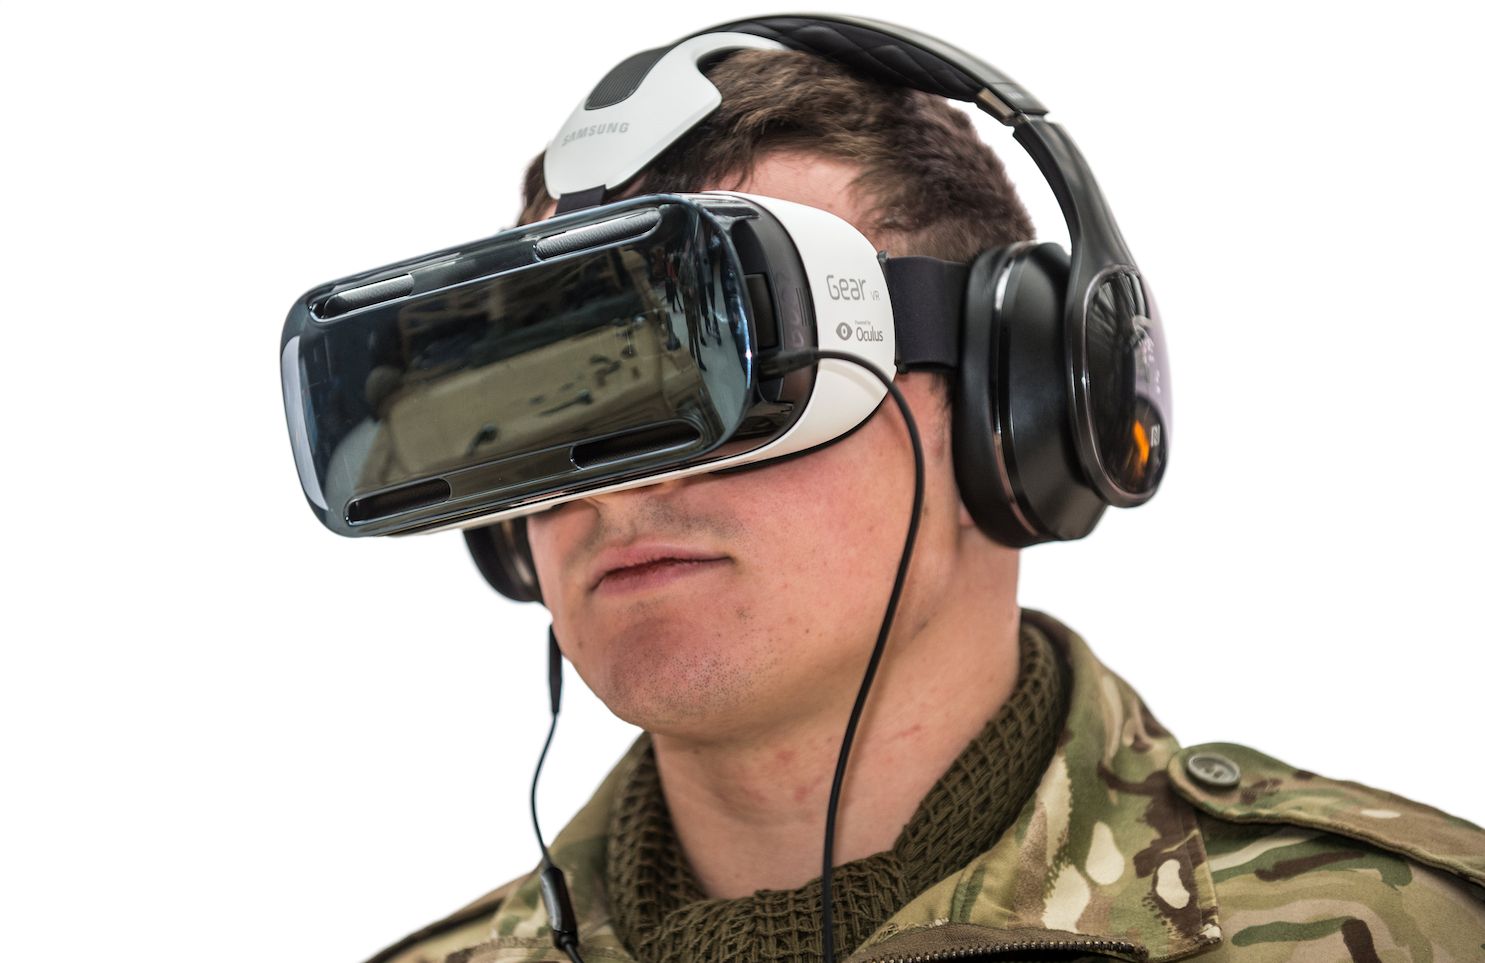 Solider wearing a VR headset and headphones for an immersive experience.